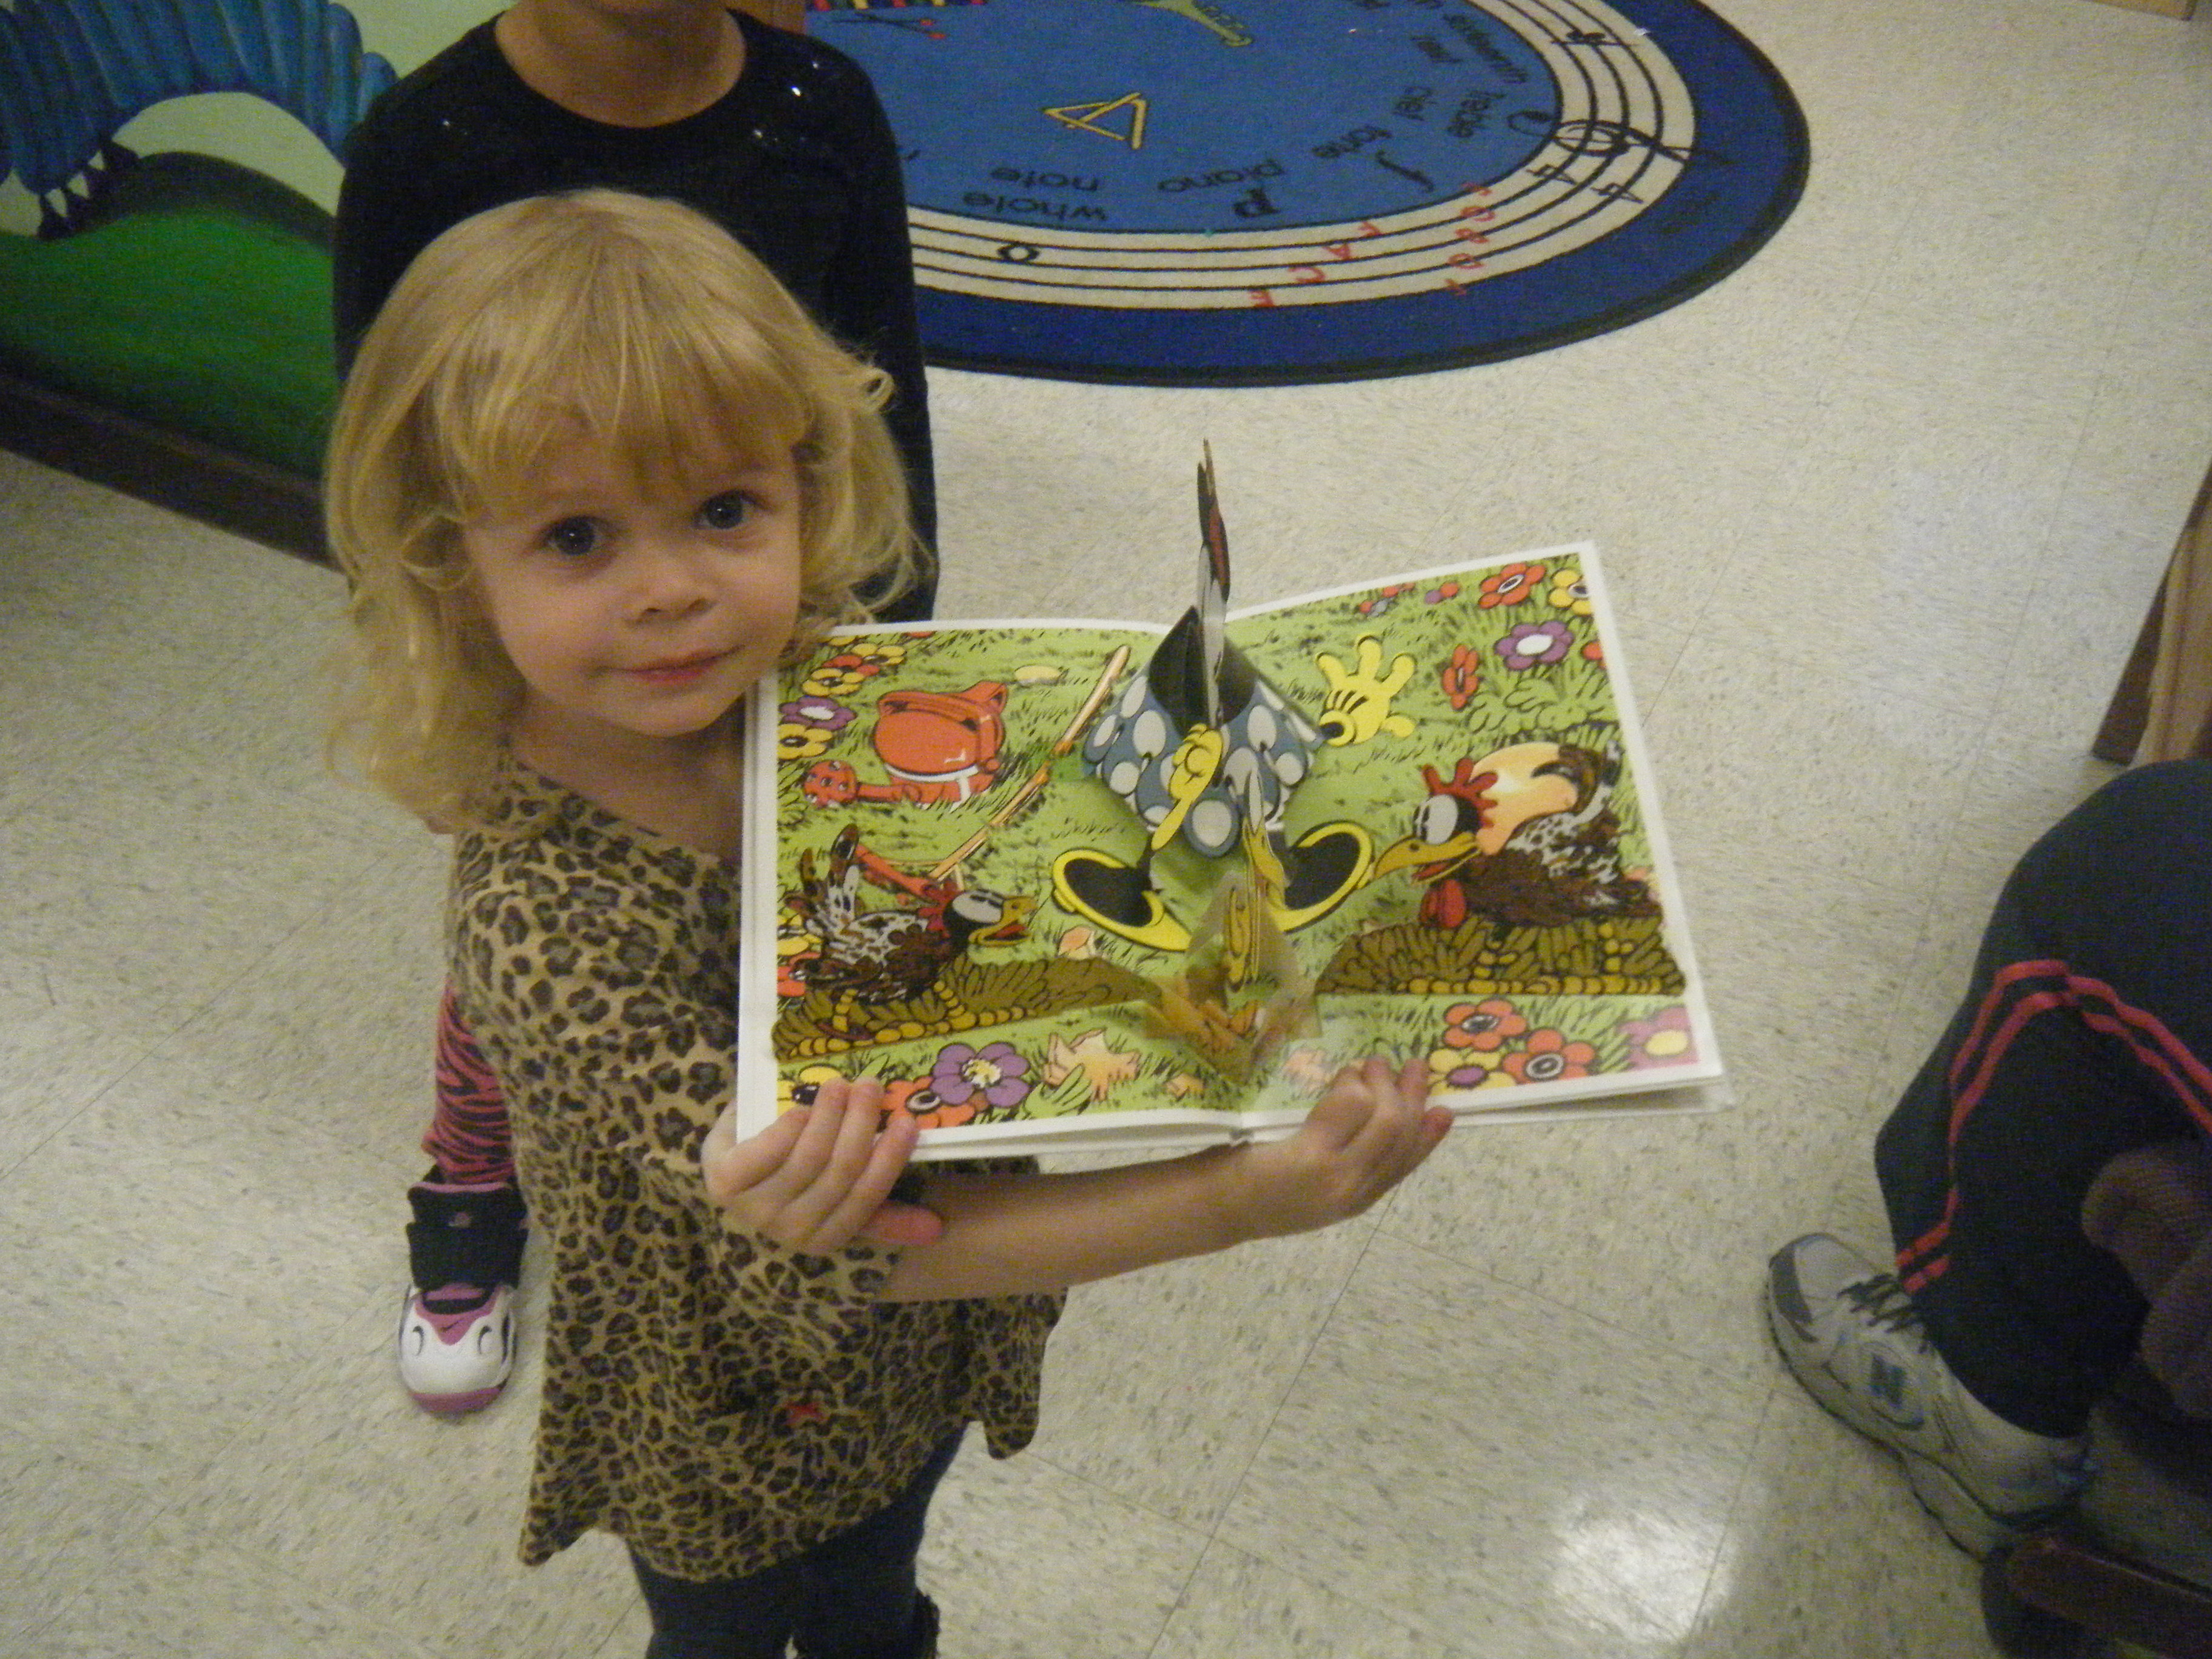 A young girl is proud to read a popup book.